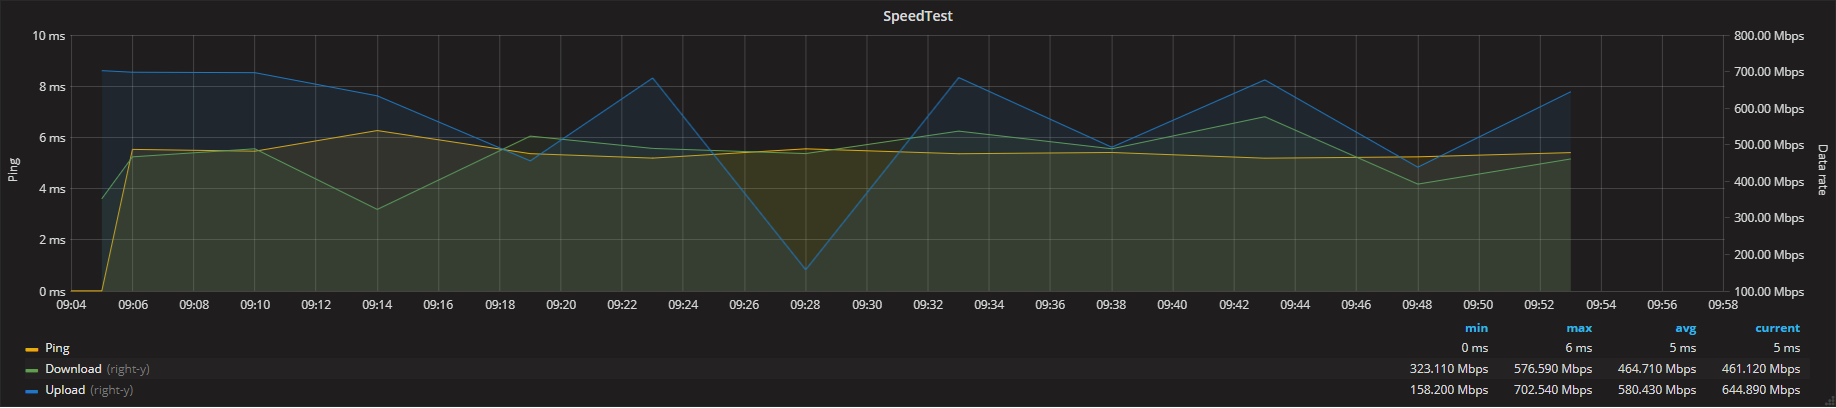 Grafana speedtest graph